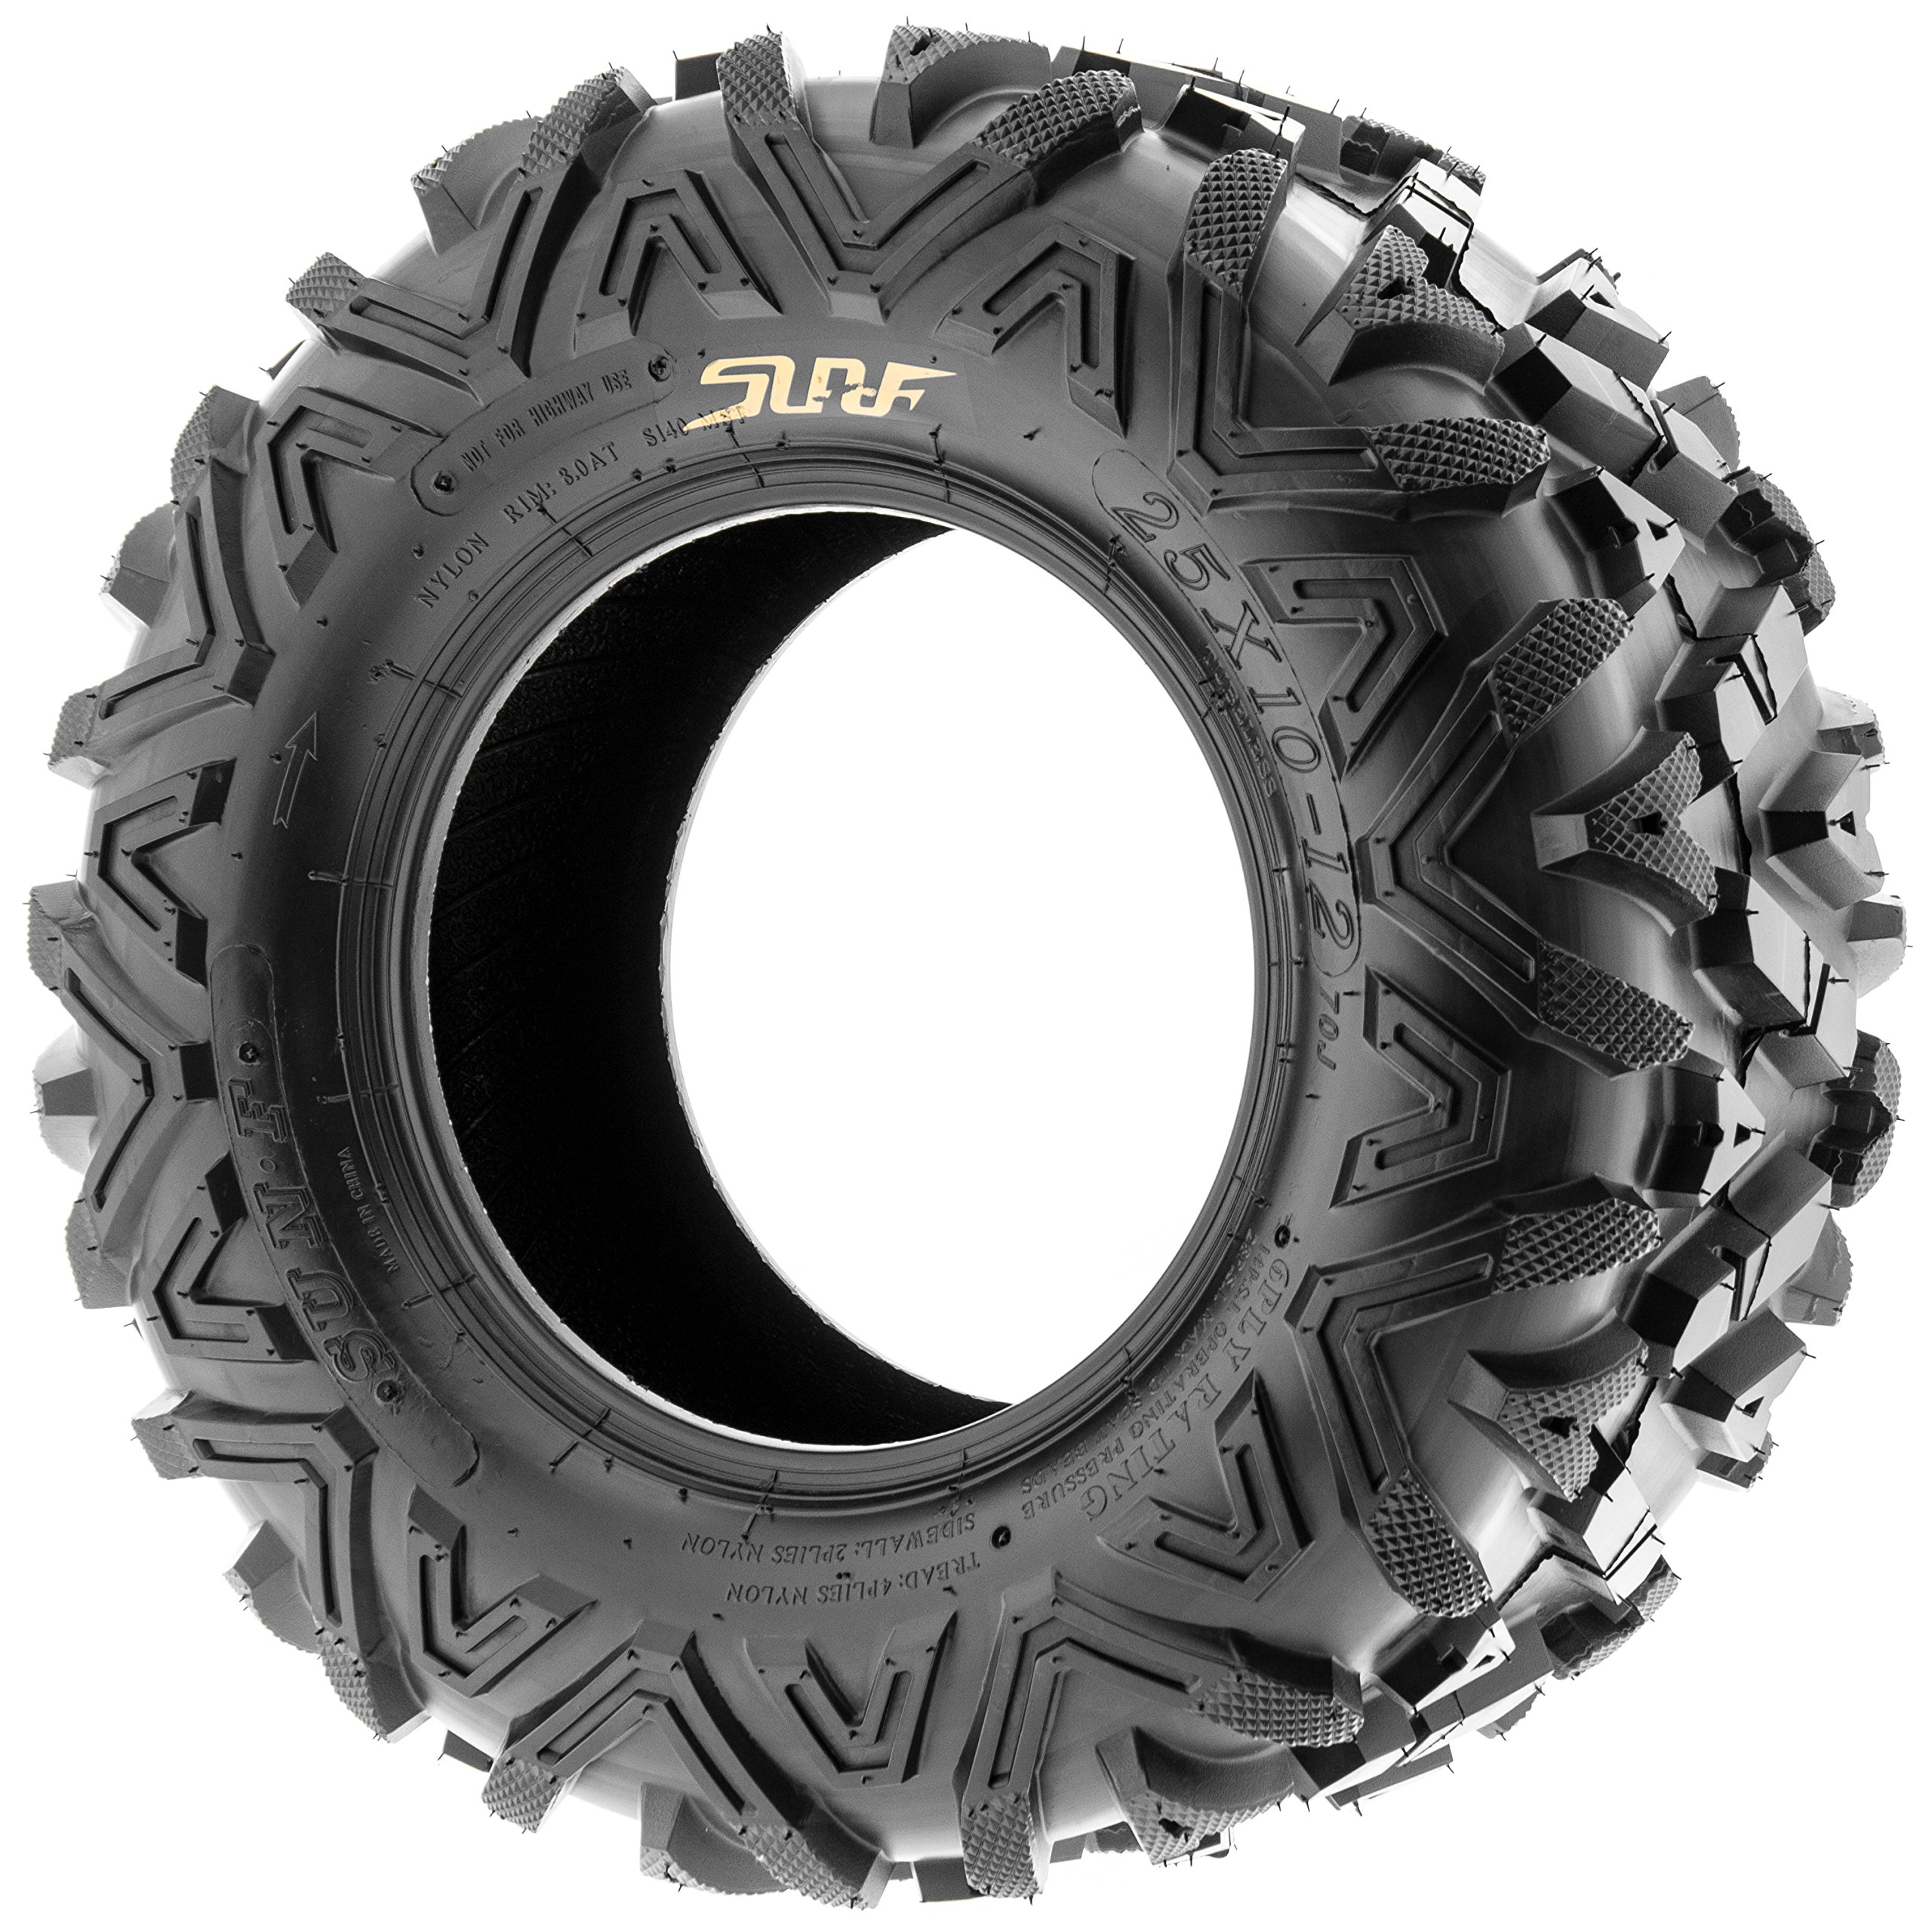 Pair of 2 SunF A033 Power.I AT 25x10-11 ATV UTV Off-Road Tires, All-Terrain, 6 PR, Tubeless by SUNF (Image #3)